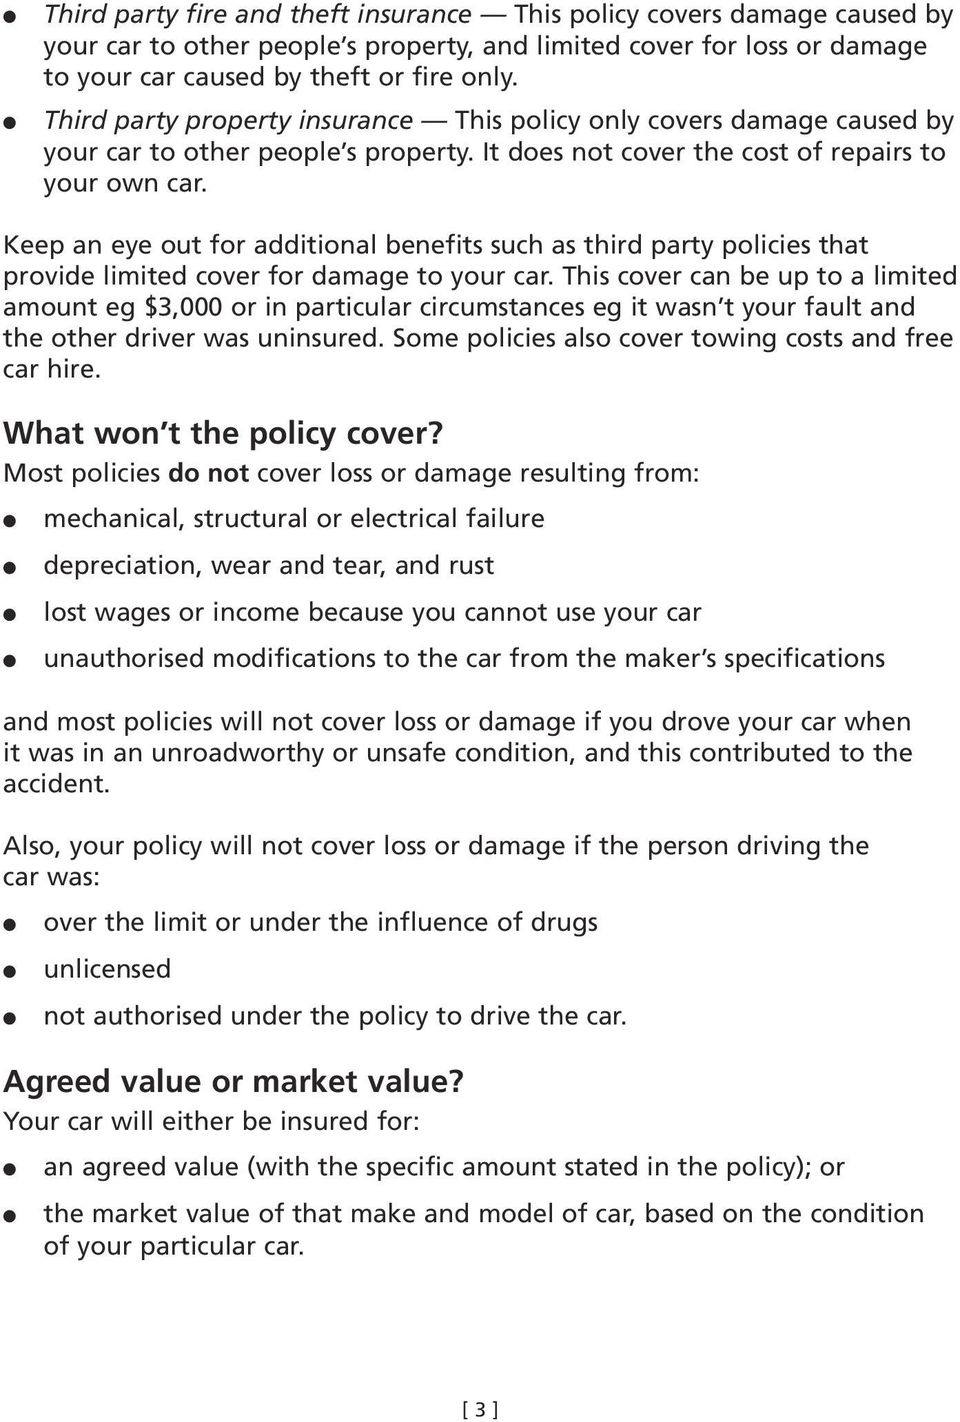 Keep an eye out for additional benefits such as third party policies that provide limited cover for damage to your car.